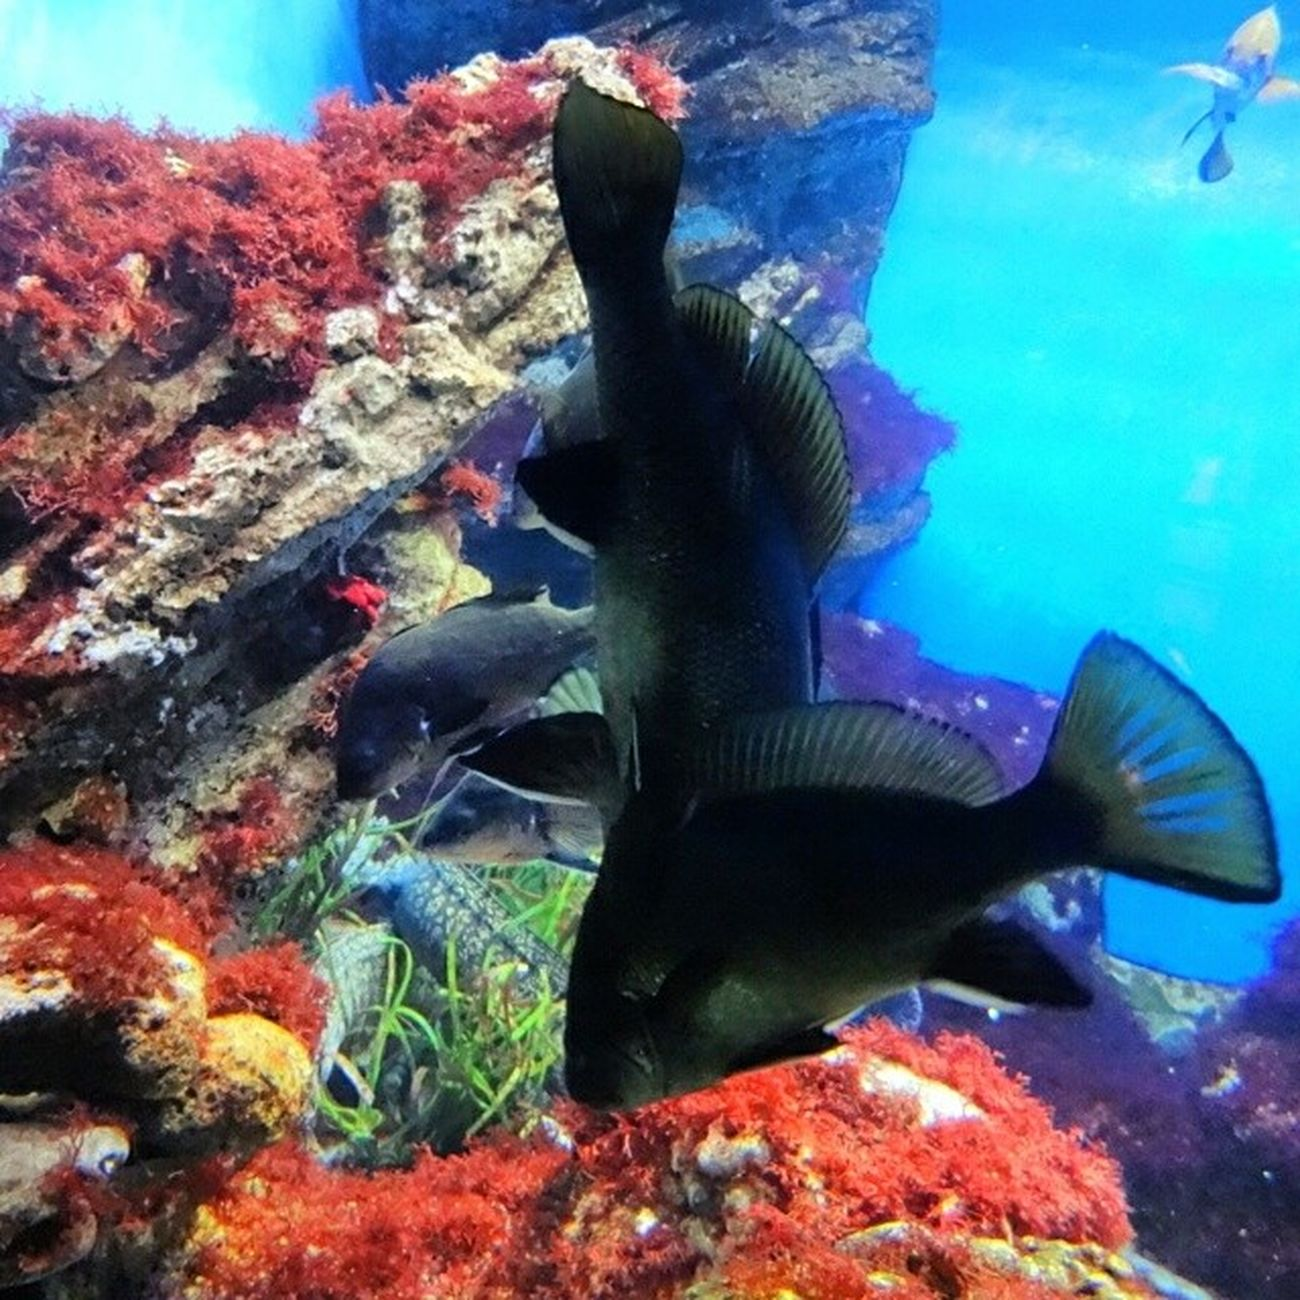 Fish Aquarium Fishtank Tagsforlikes Fishporn Instafish Instagood Swim Swimming Water Coral Reef Reeftank Tropical TropicalFish Aquaria Photooftheday Saltwater Freshwater Beautiful Ocean Watertank